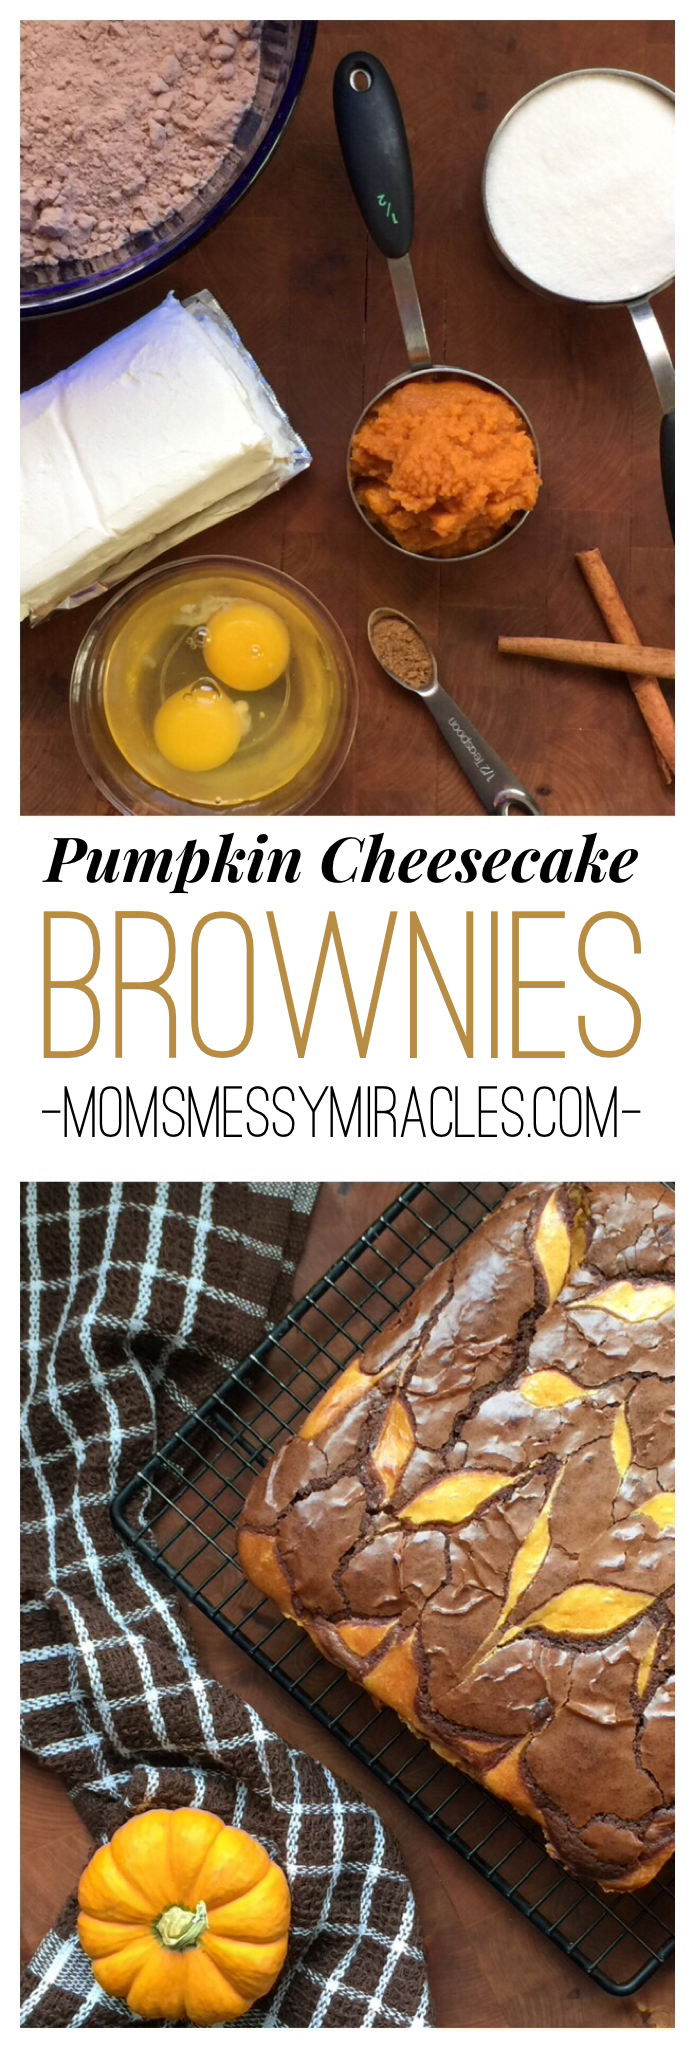 Pumpkin Cheesecake Brownies - Mom's Messy Miracles - These pumpkin cheesecake brownies are so easy and so yummy, you'll make a pan to share and one to keep for yourself.